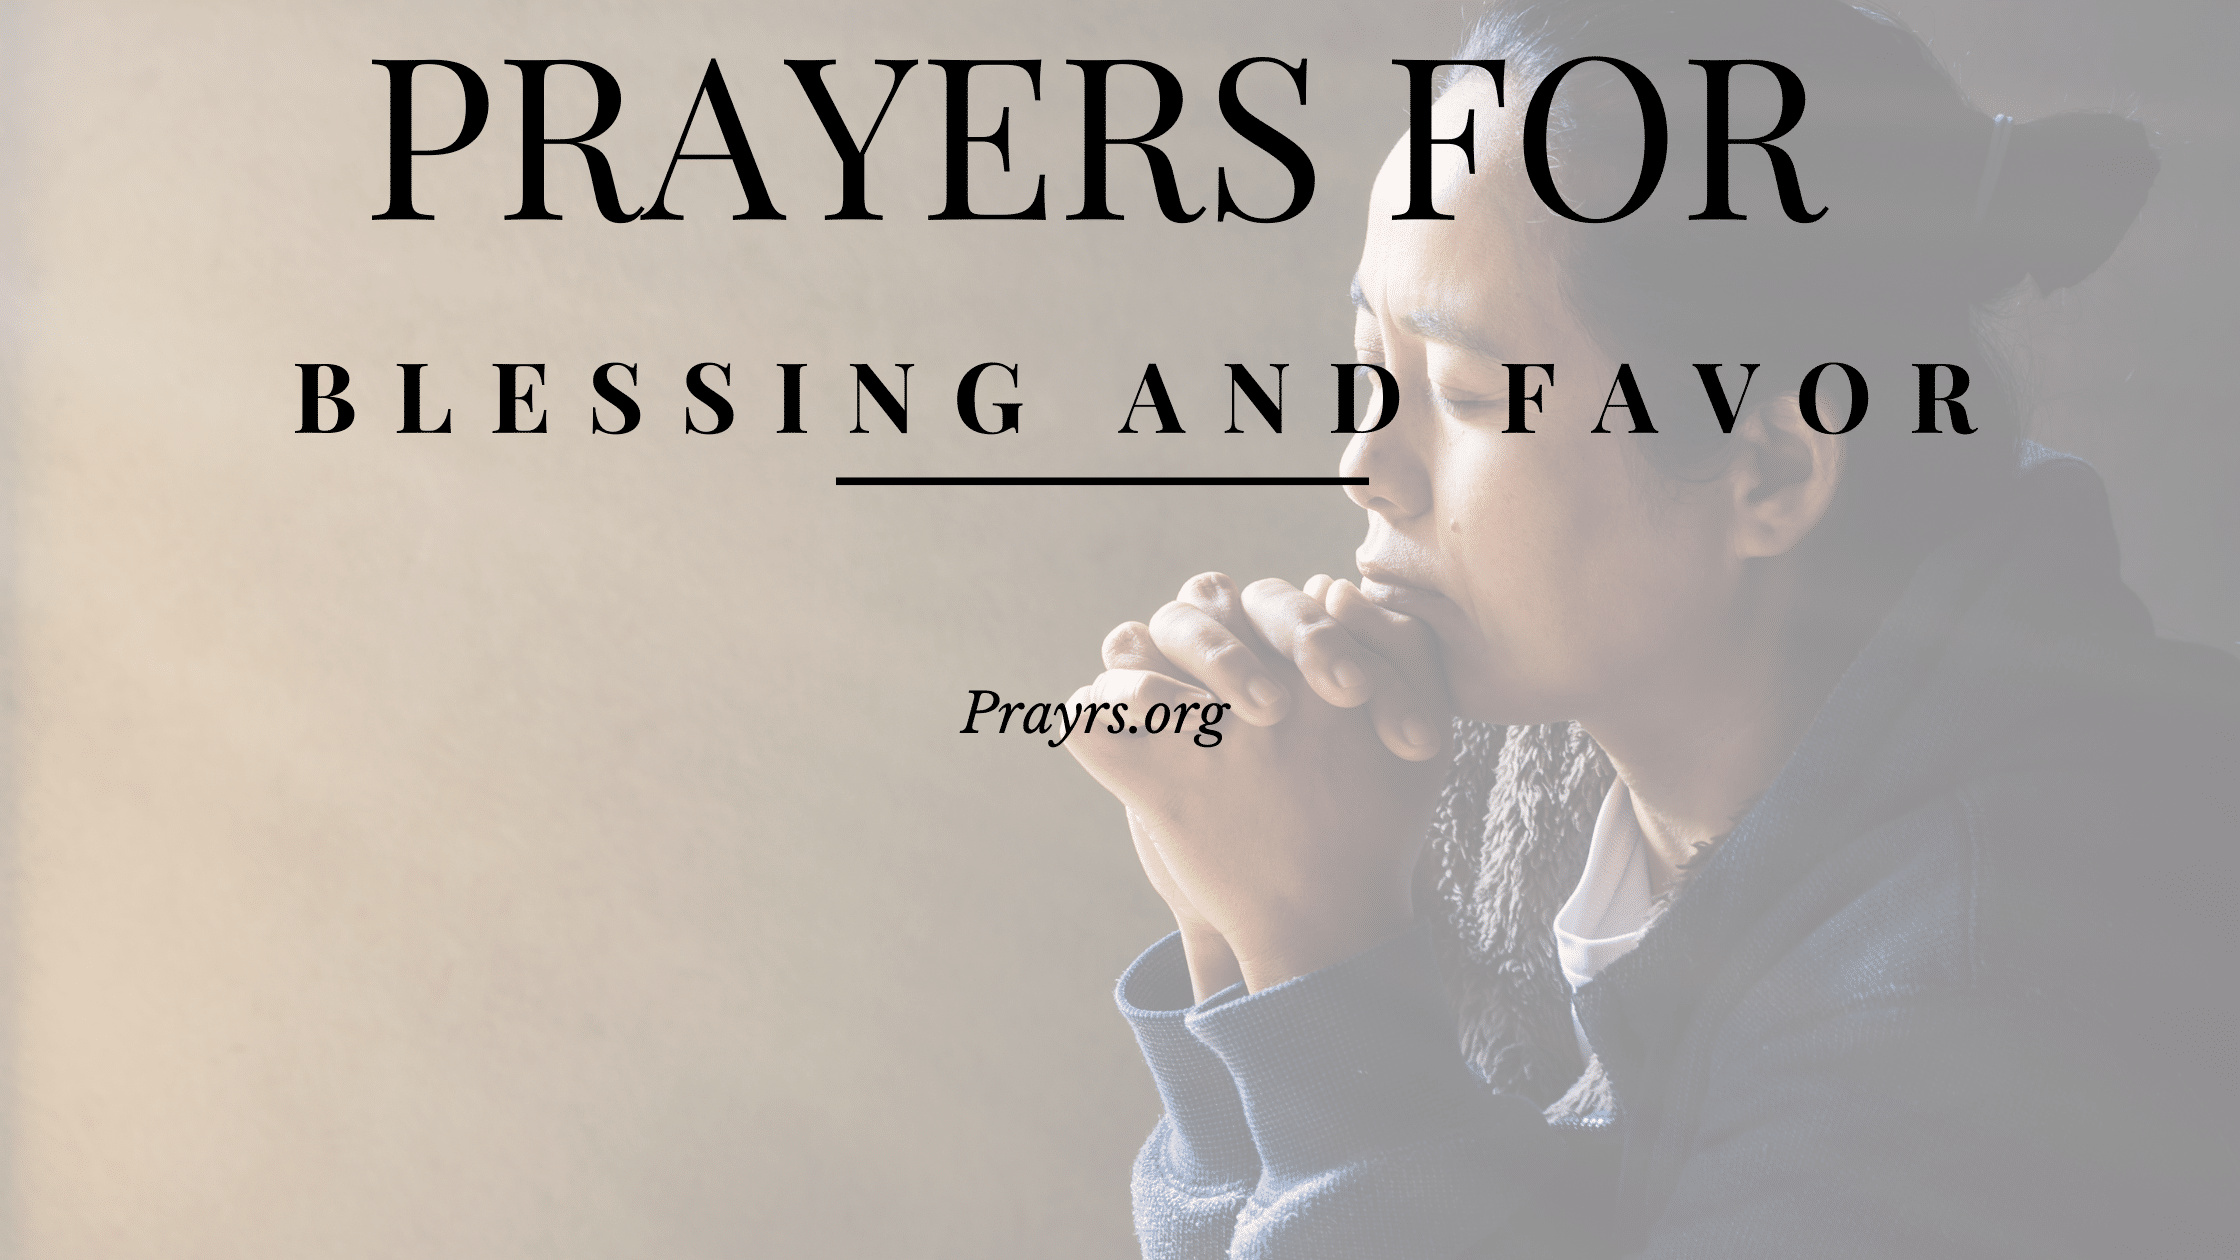 Prayers for Blessing and Favor